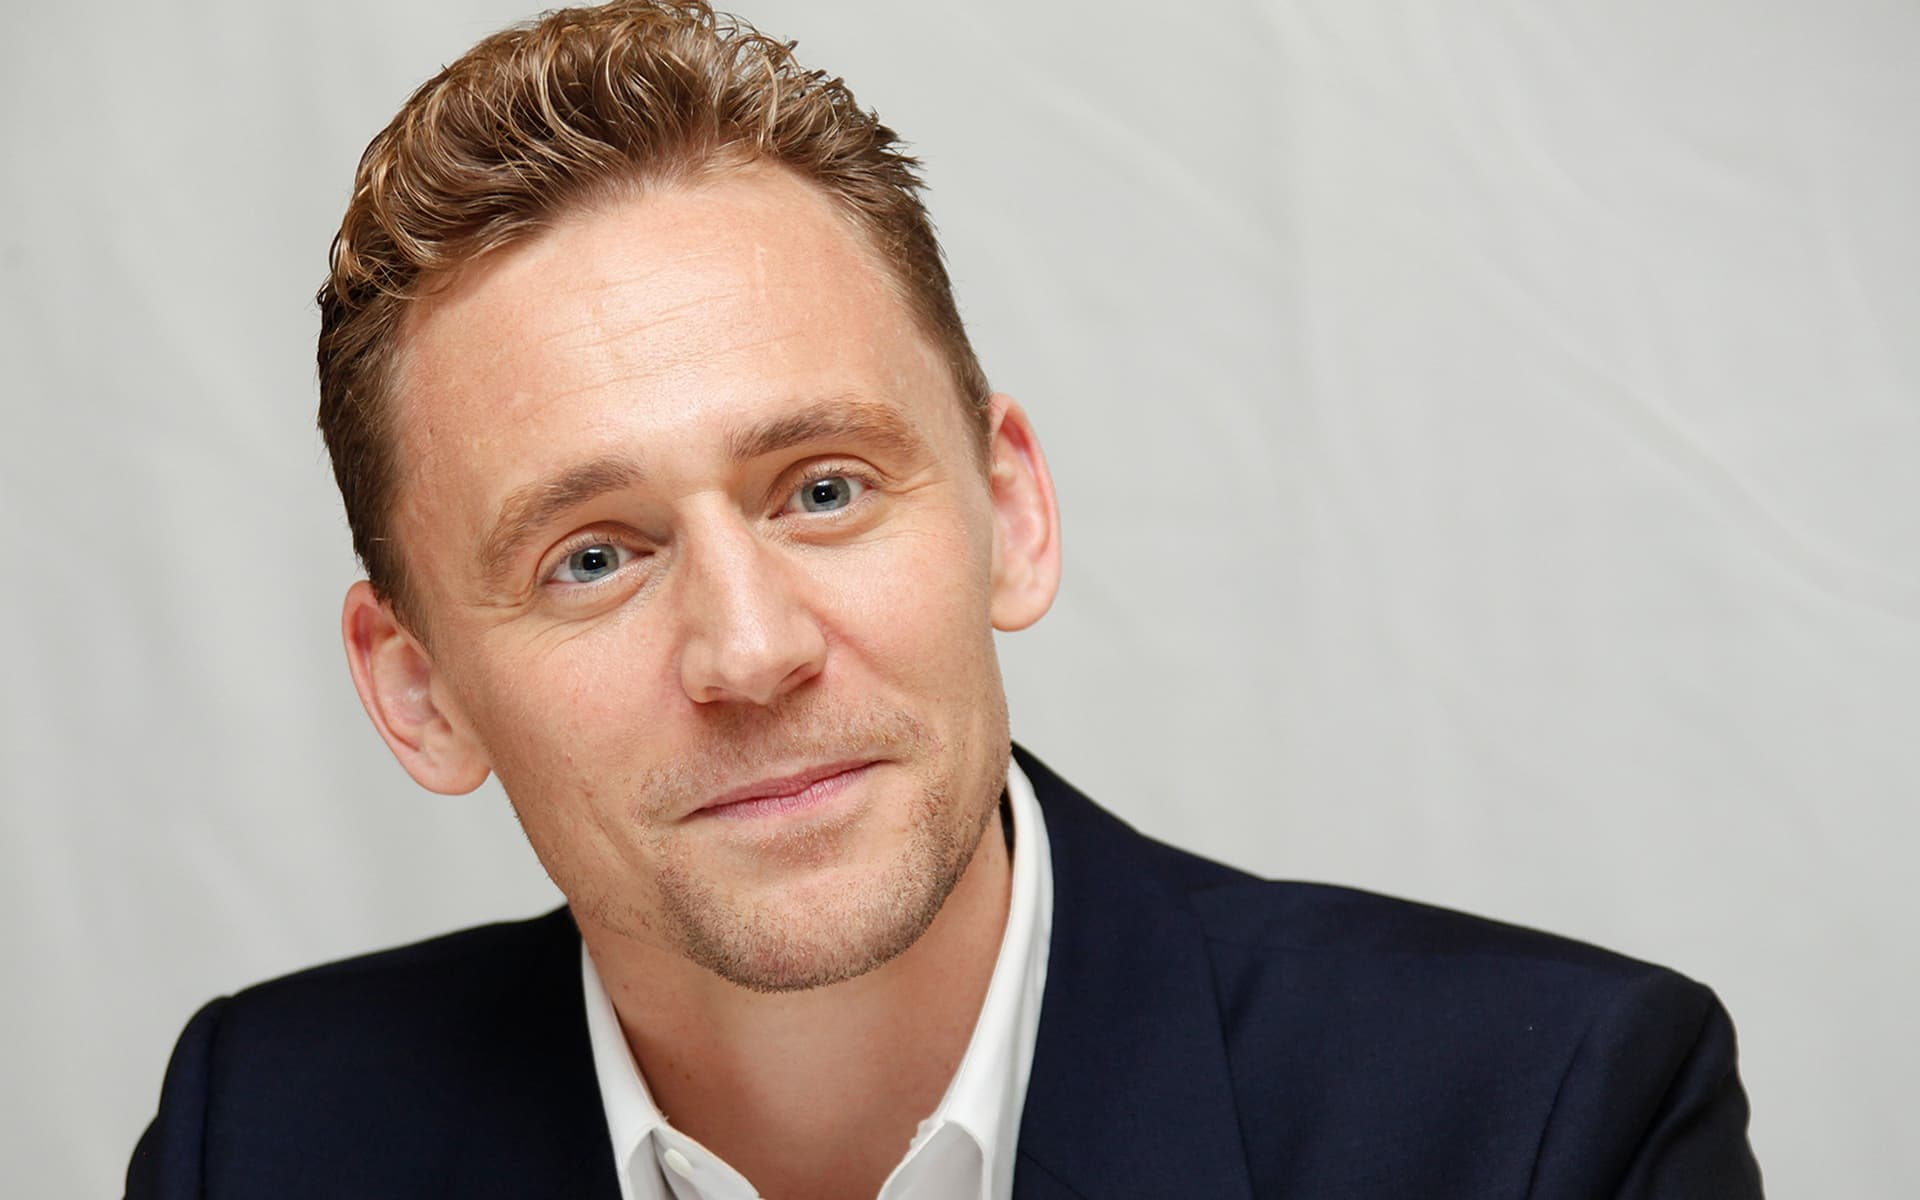 cute Tom Hiddleston wallpaper new 2016 picture